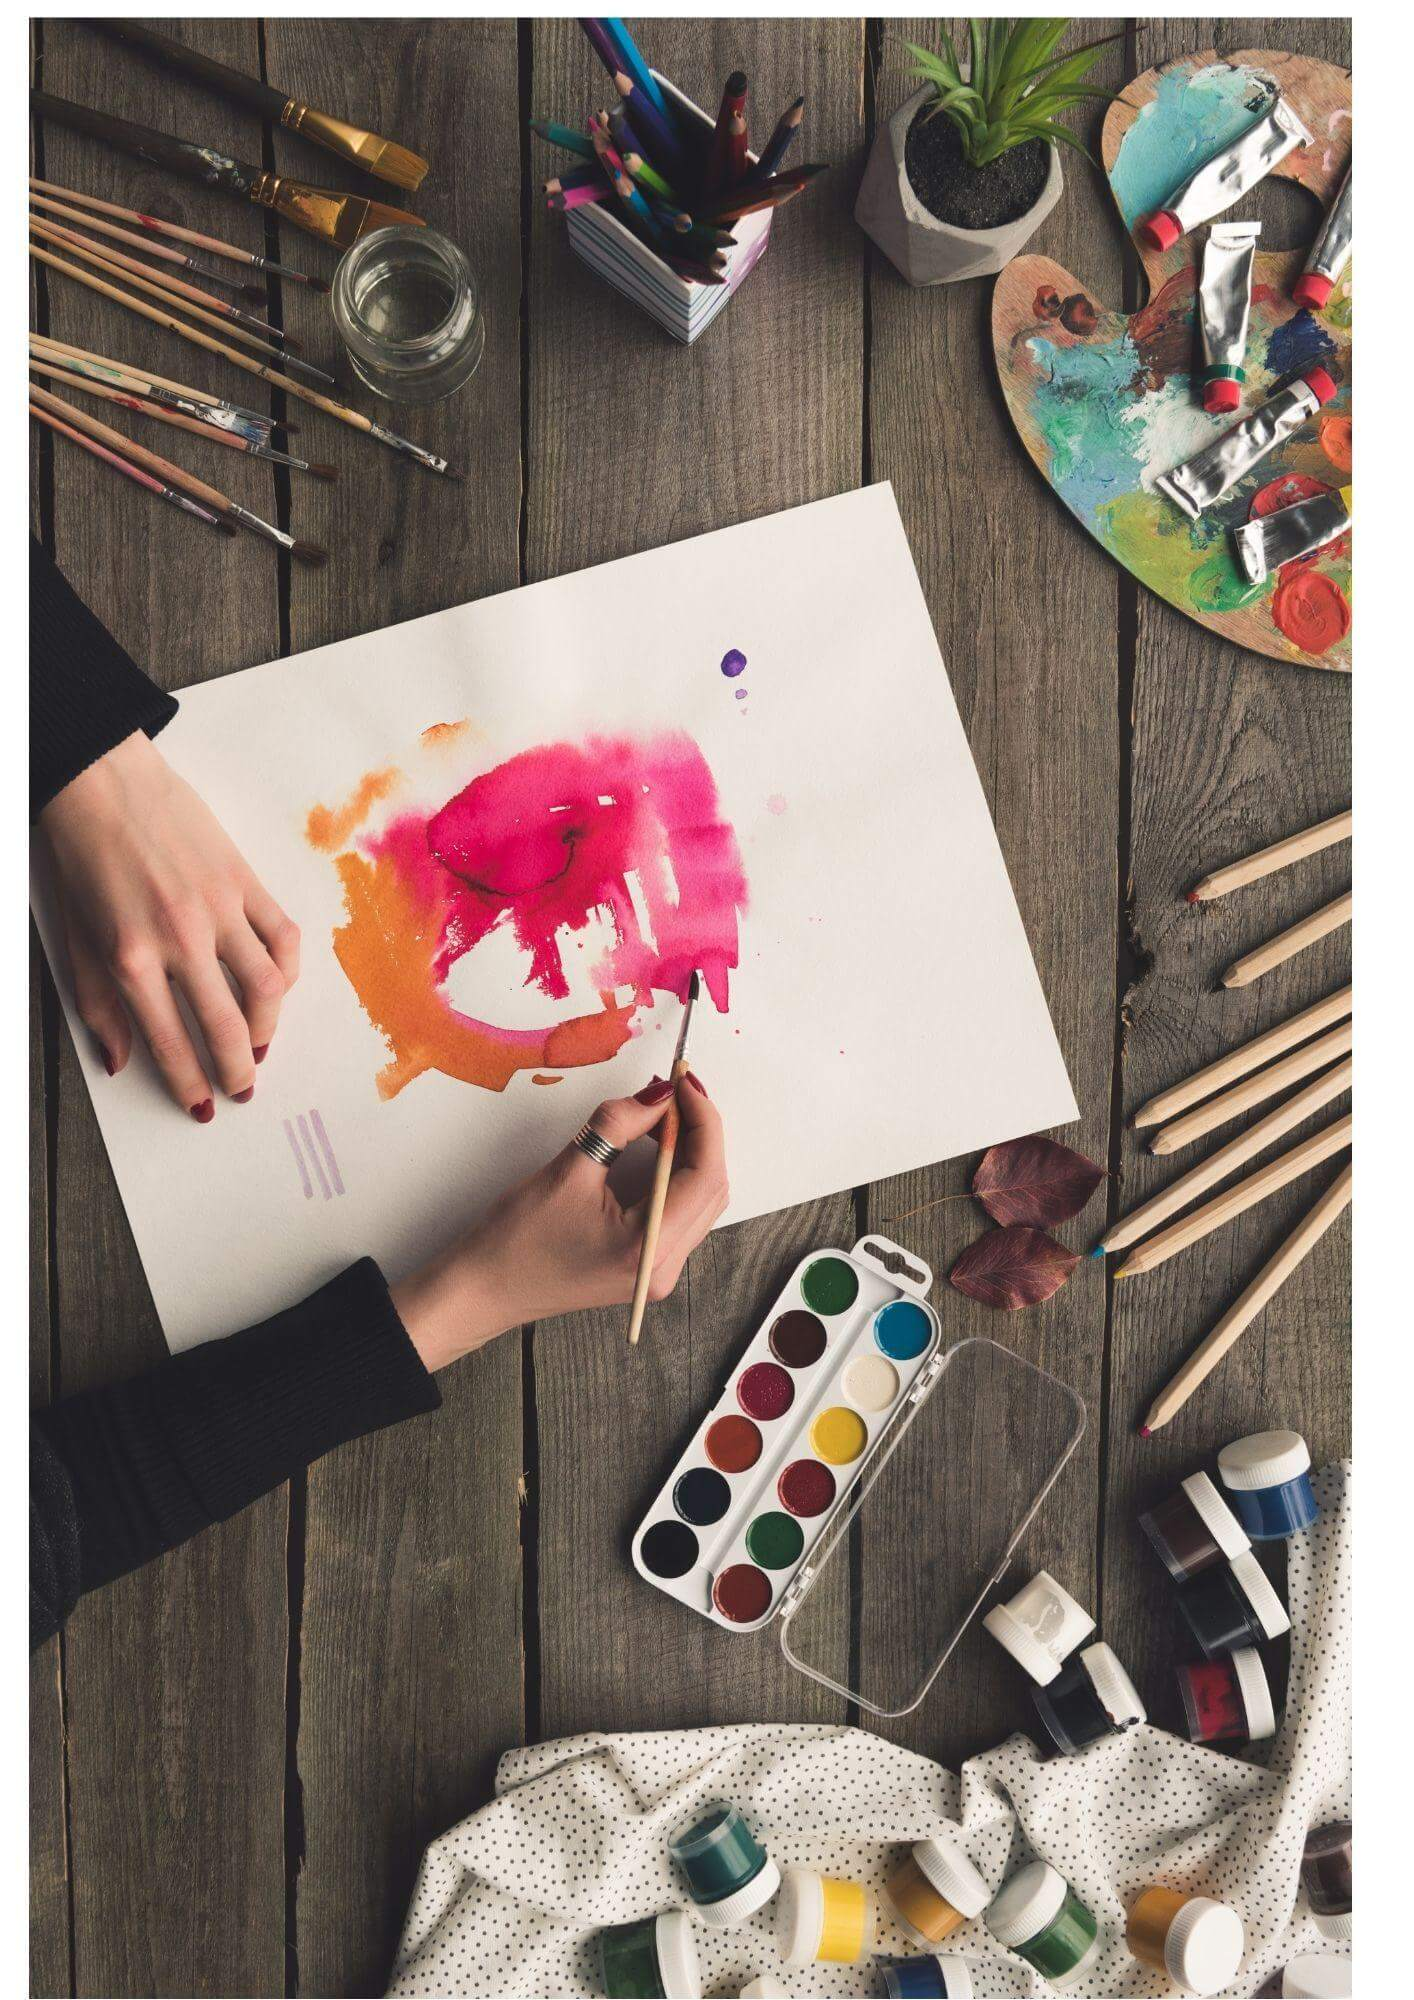 Evening Art Class- One session